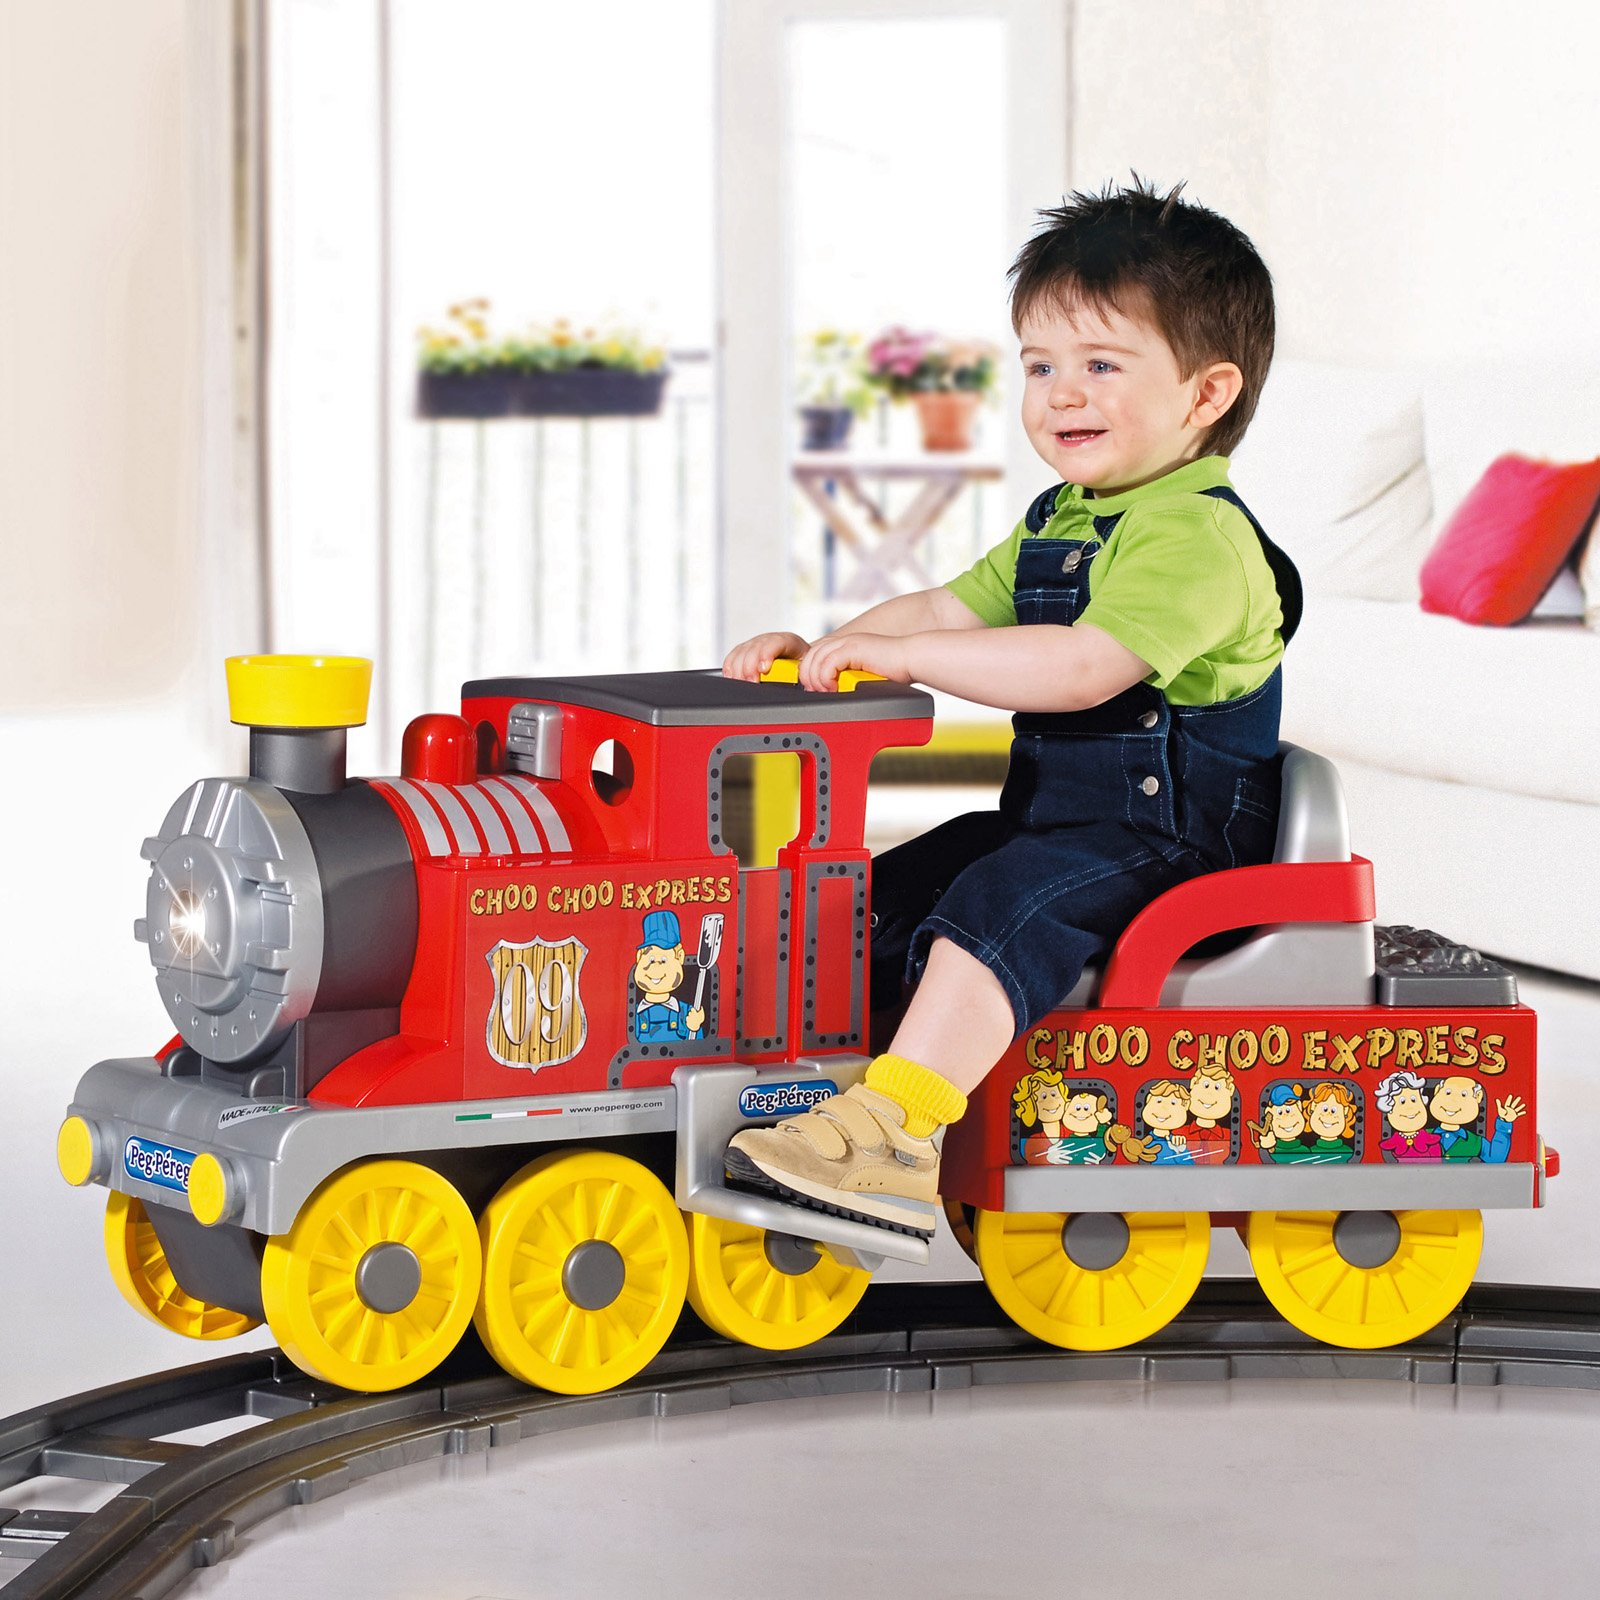 Ride On Train For Backyard :   Train Themed Party Toy Packages Singapore (Thomas, Choo Choo Train